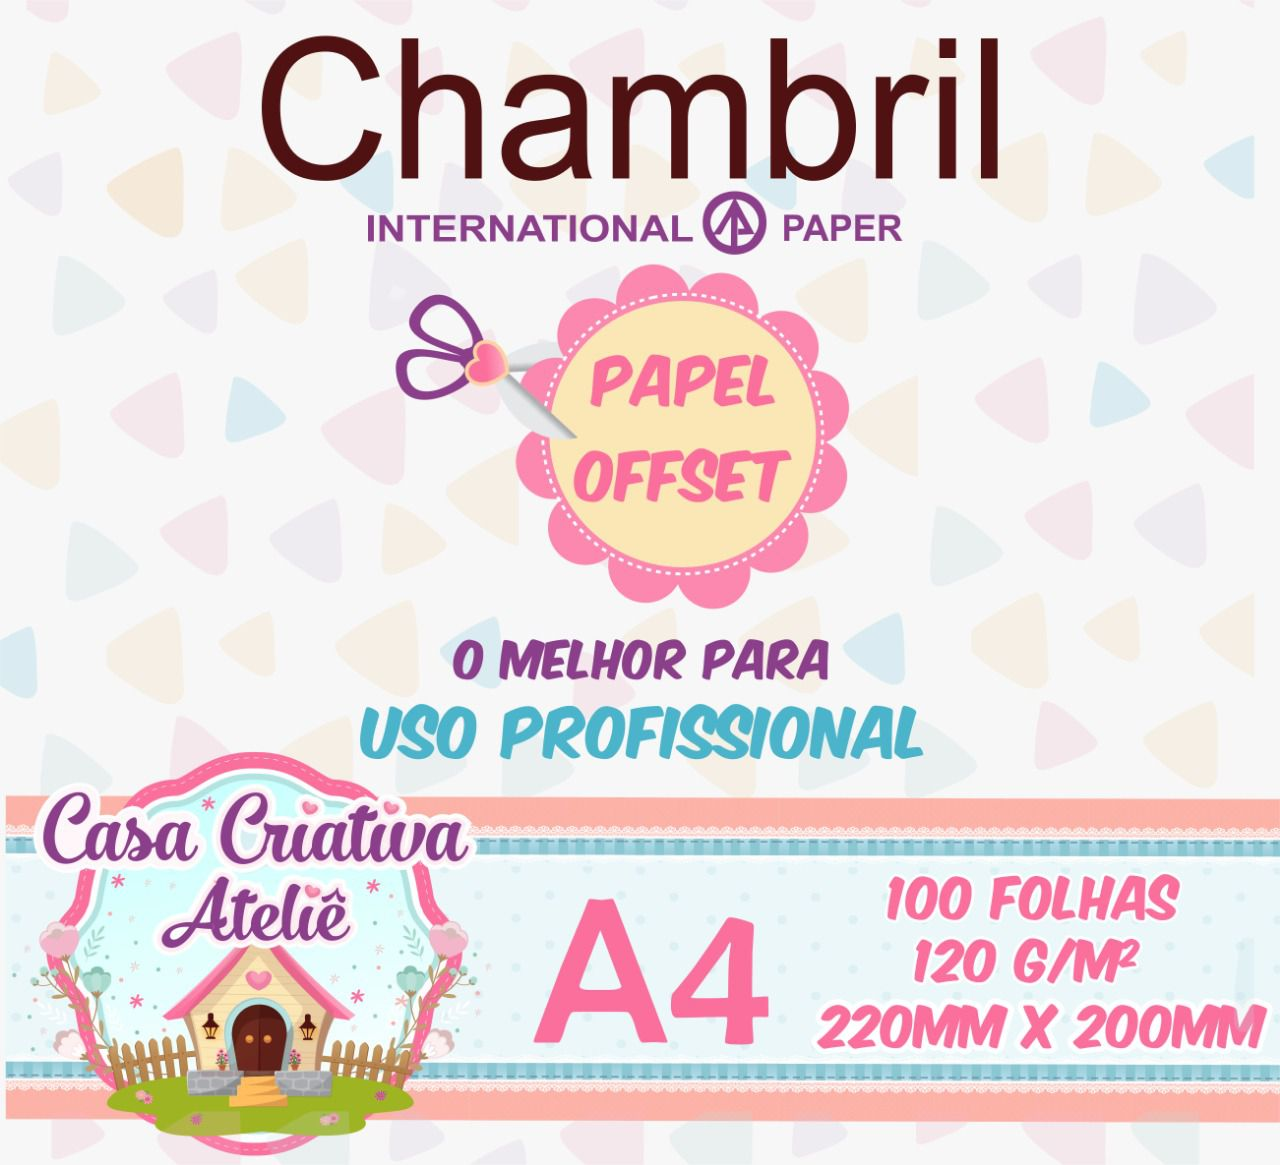 Papel offset chambril 120g/m² - 20x22cm - 100 folhas